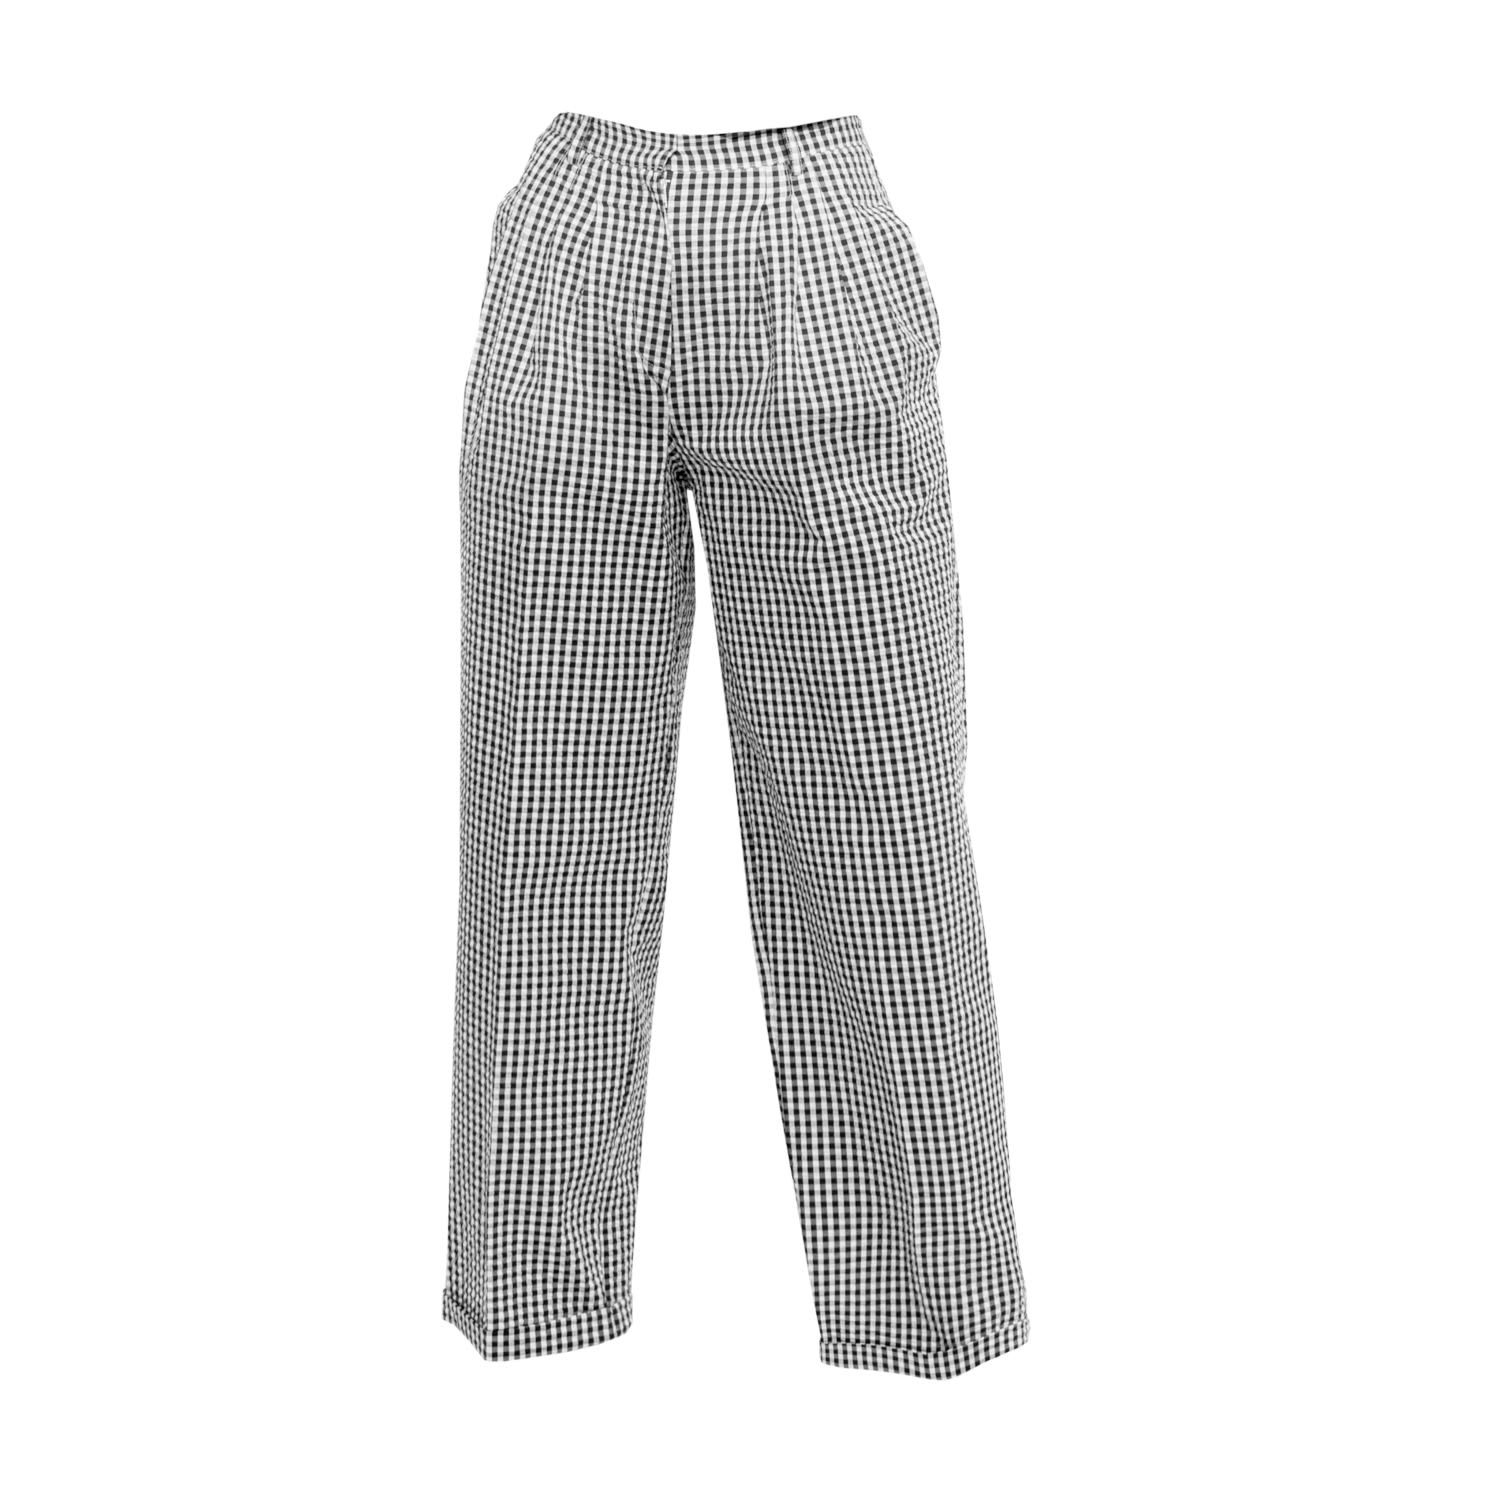 Tomcsanyi - Toalmas Black & White Multi Pleat Trousers